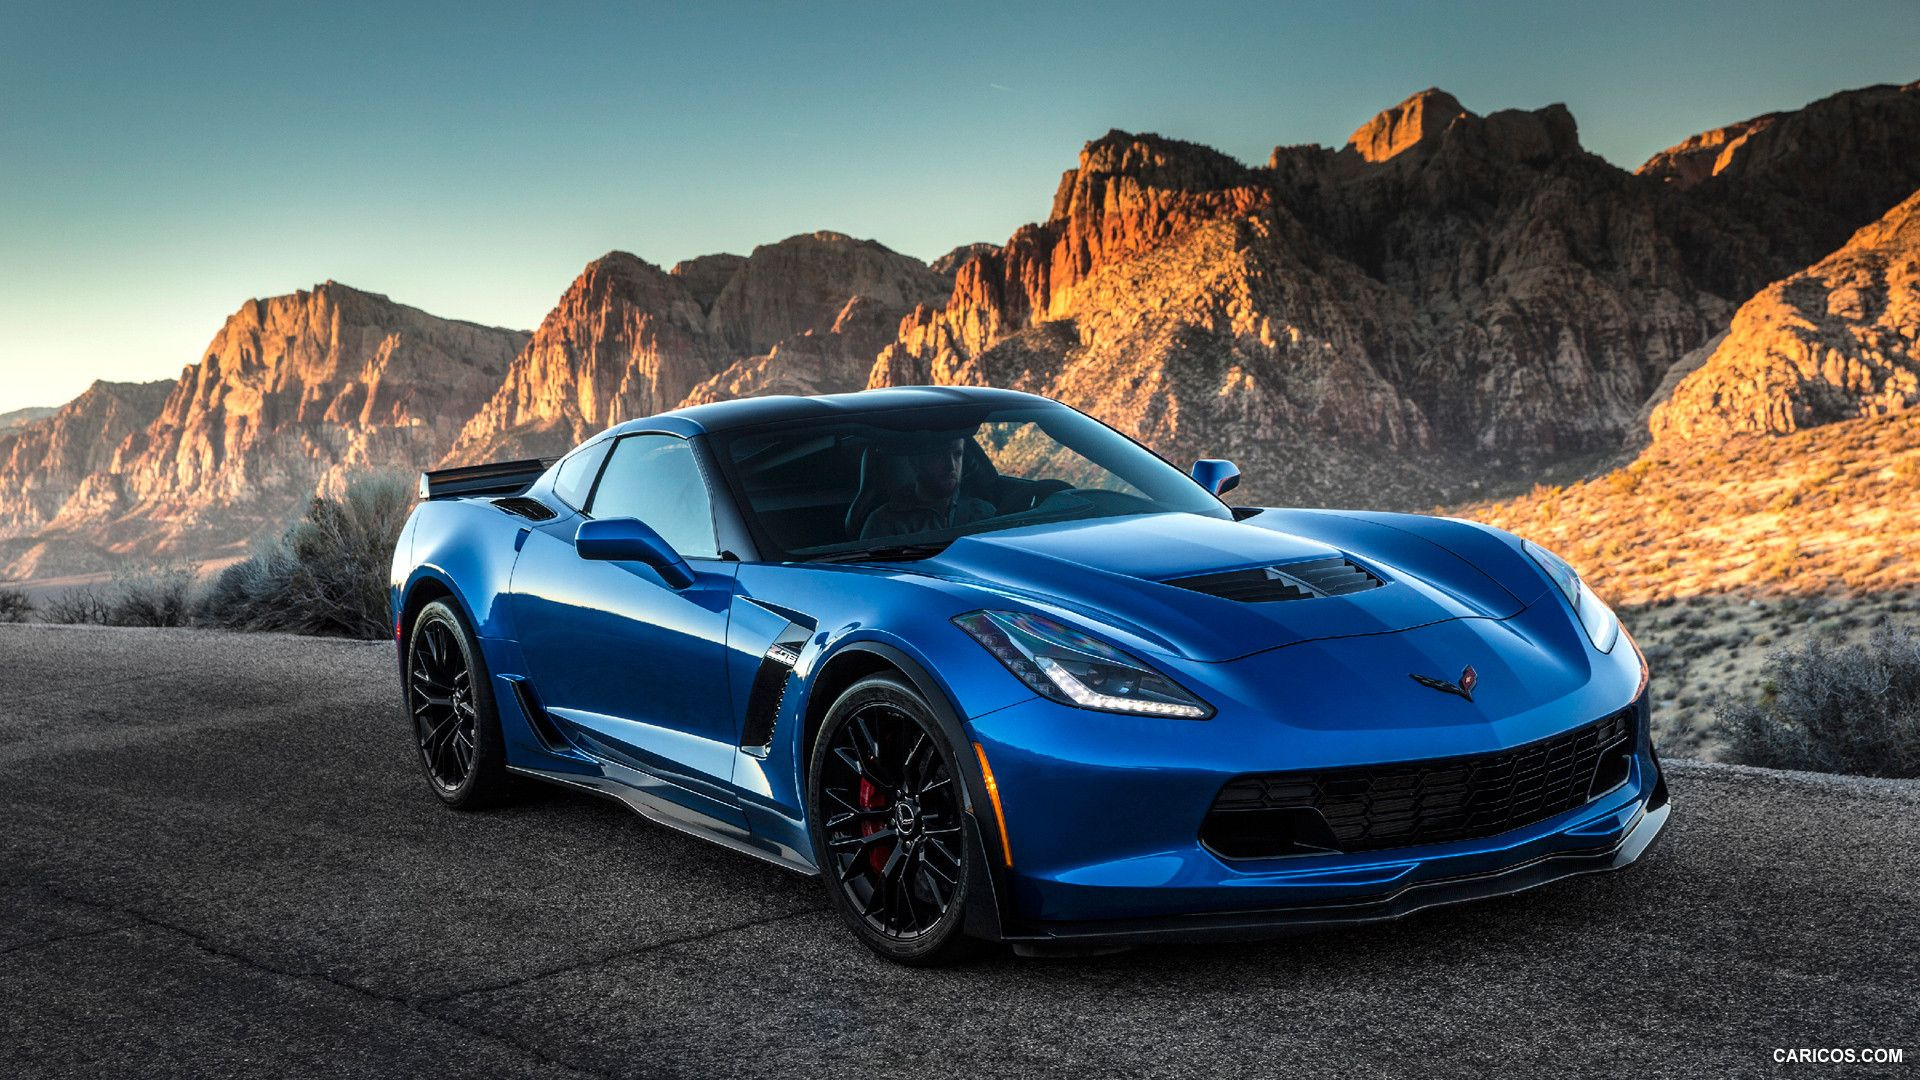 Merveilleux 2015 Chevrolet Corvette Z06   Front | HD Wallpaper #101